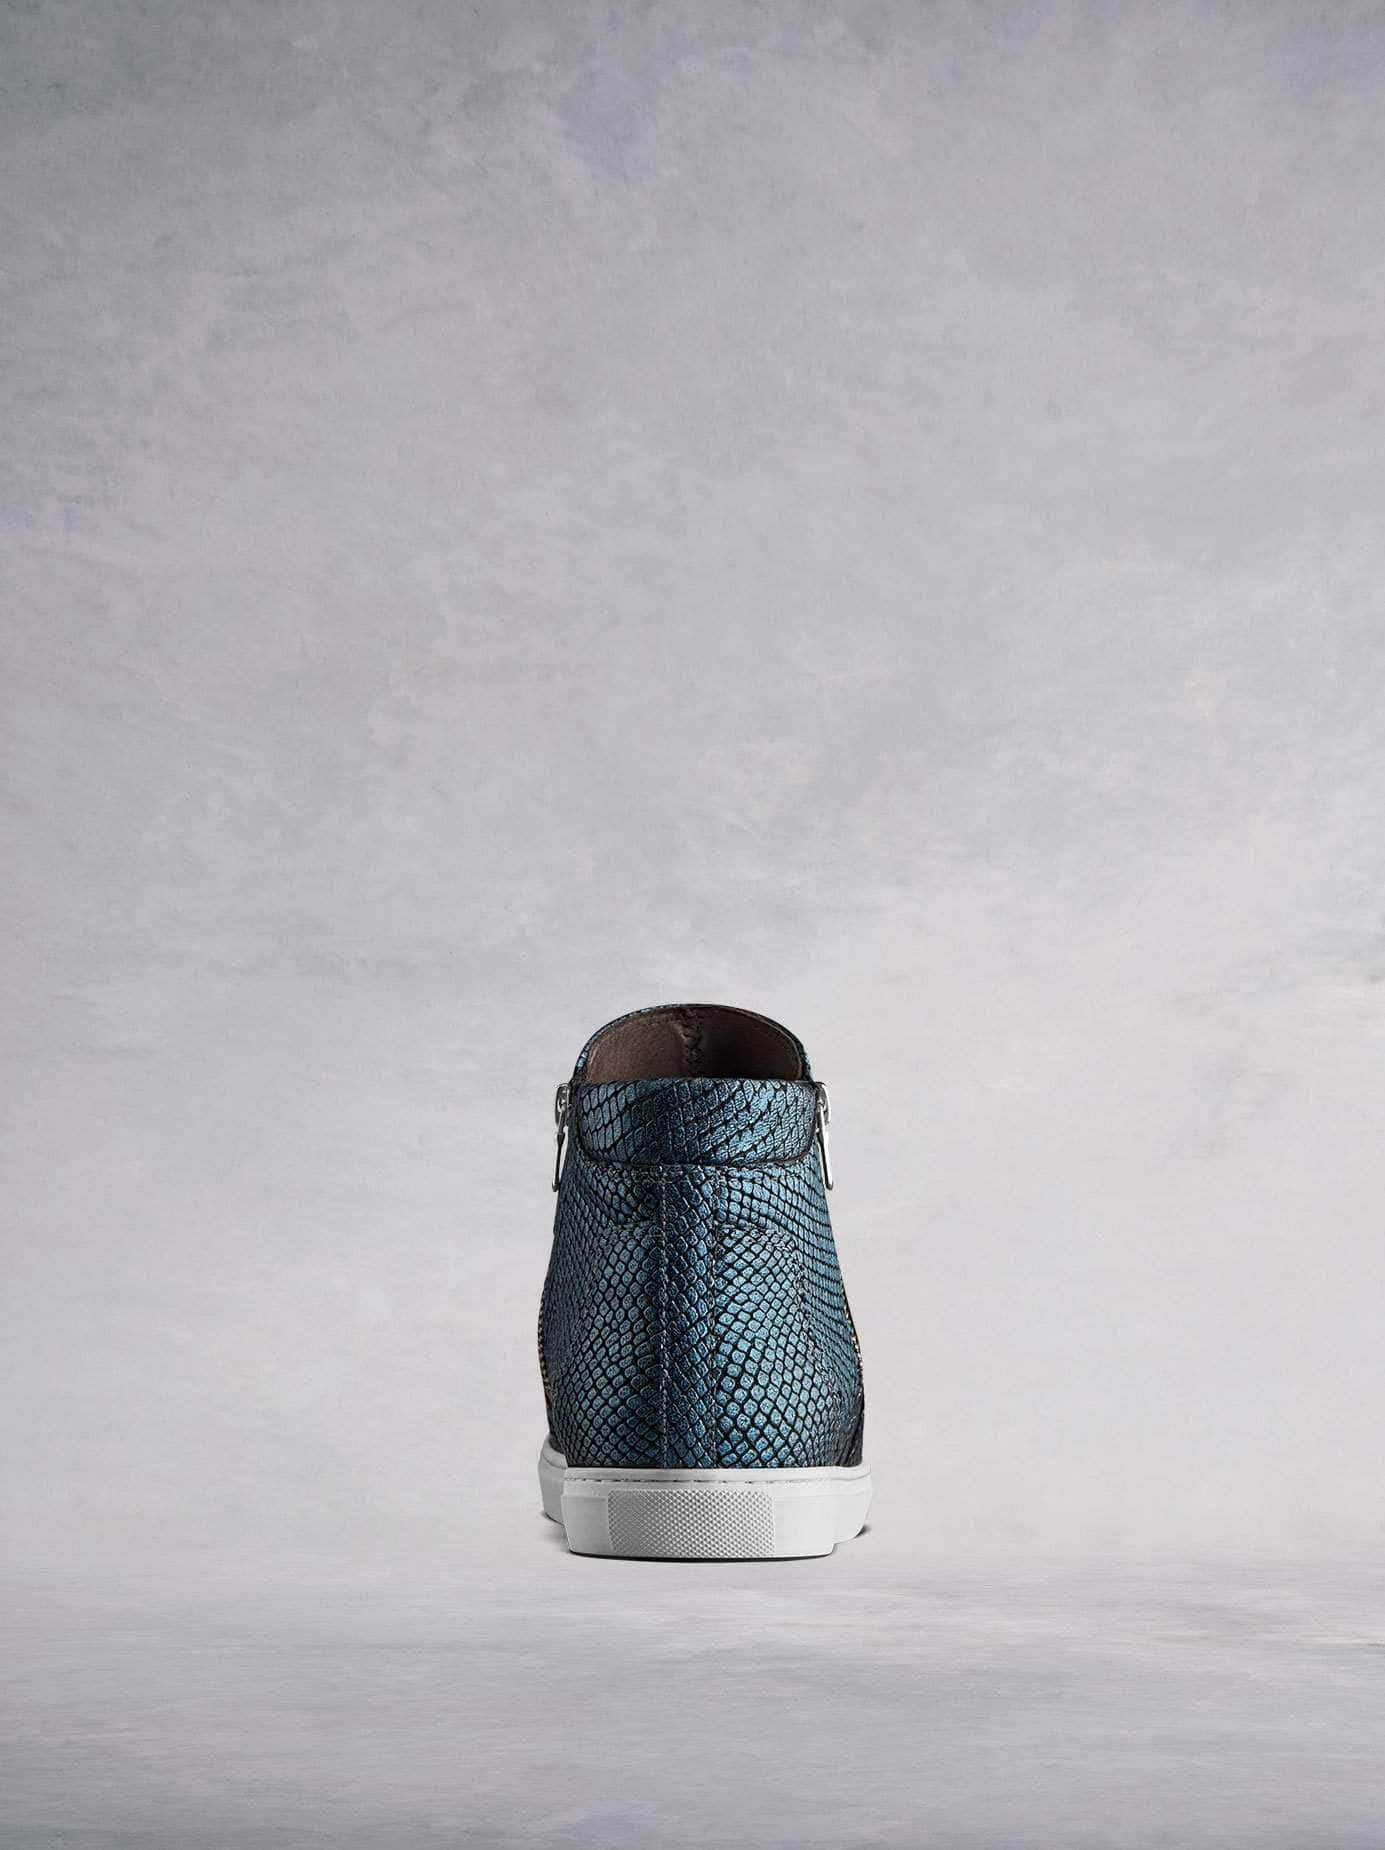 Made from stylish blue snake embossed leather with a contrast white sole.